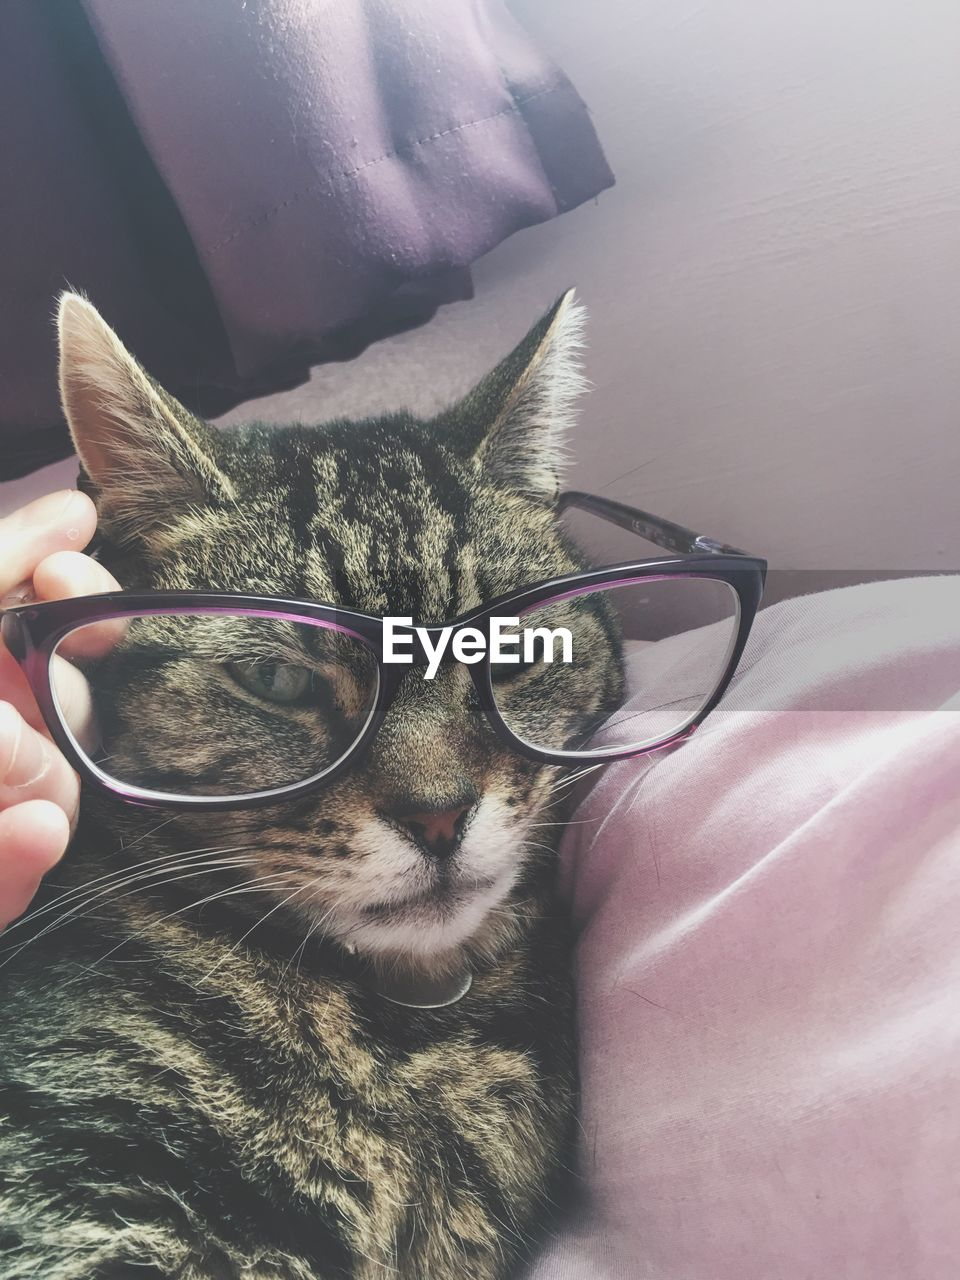 pets, domestic animals, domestic, mammal, cat, one animal, domestic cat, feline, vertebrate, human hand, human body part, real people, one person, hand, indoors, unrecognizable person, furniture, pet owner, whisker, finger